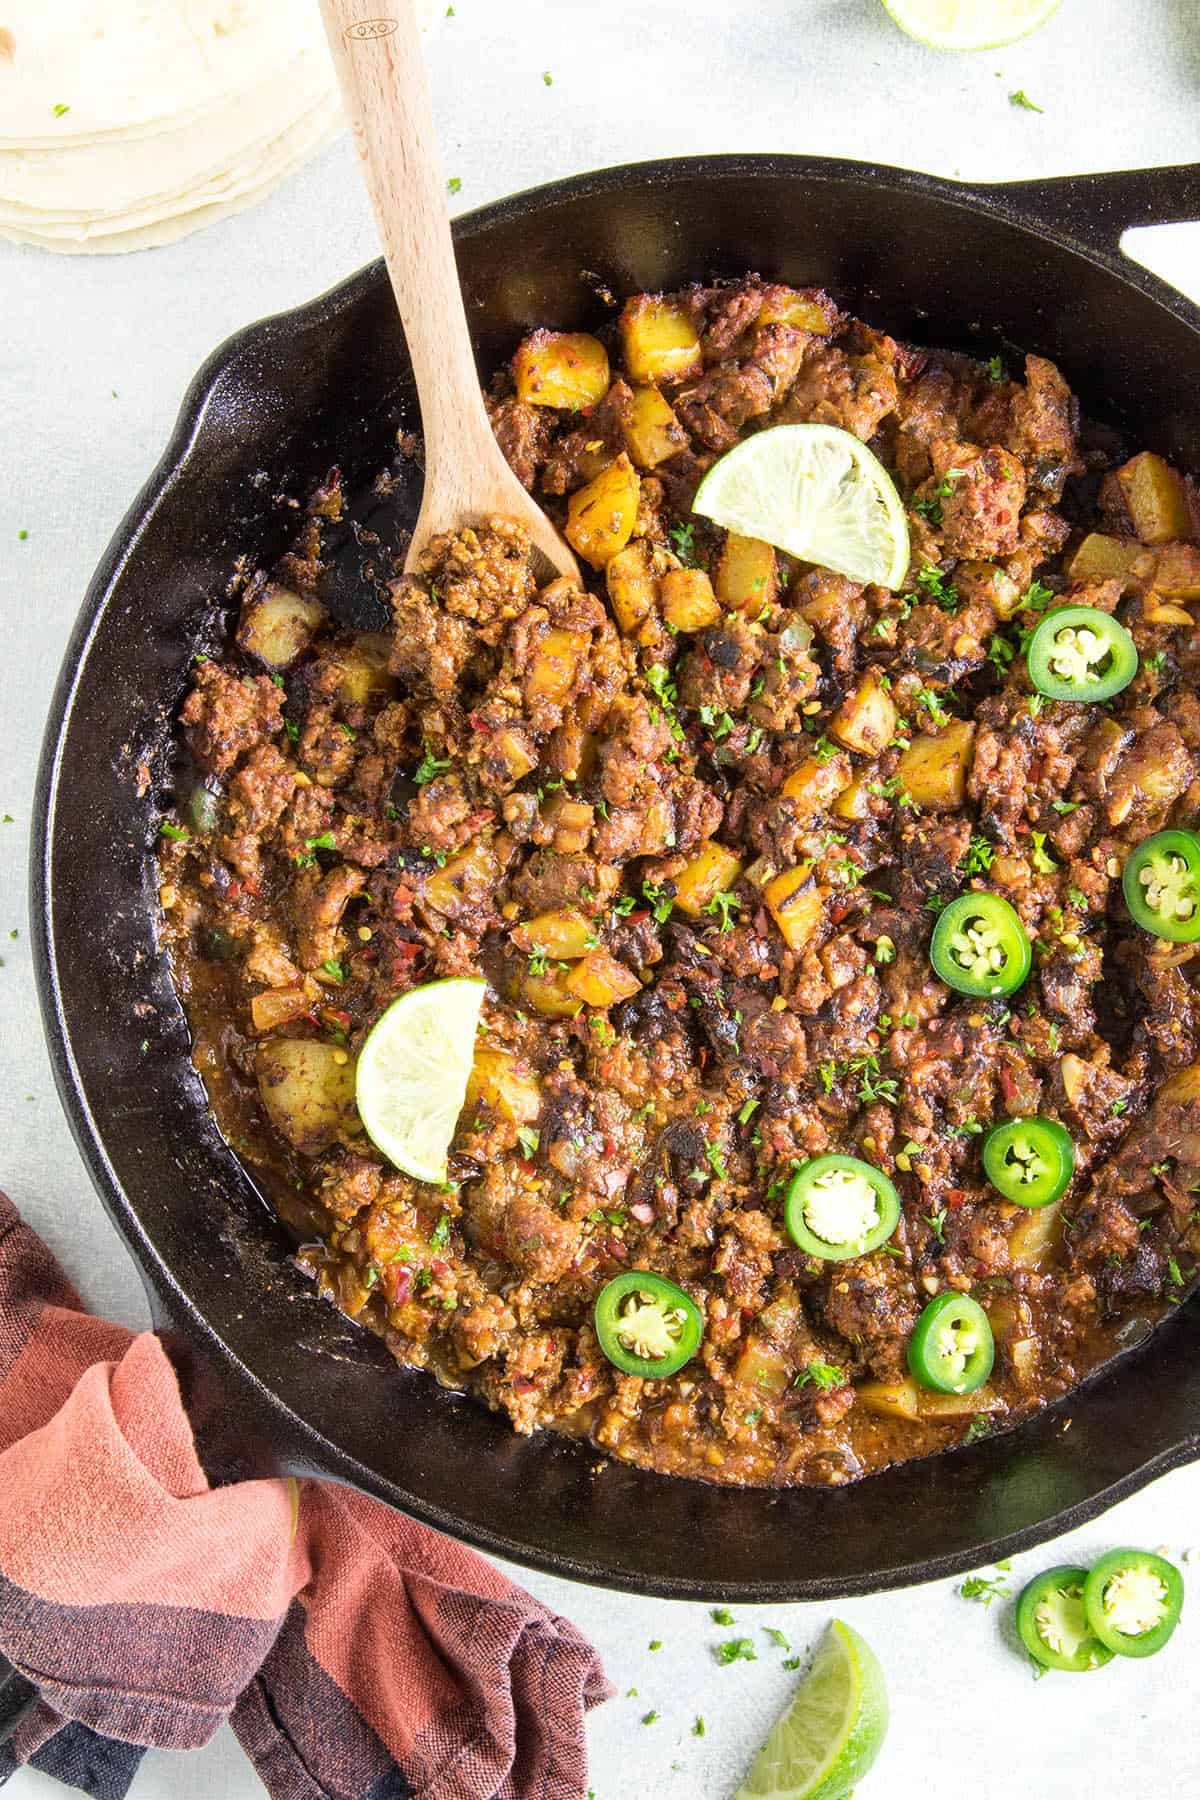 Mexican Picadillo Recipe - Made with ground beef, potatoes, ancho and loads of Mexican flavors.